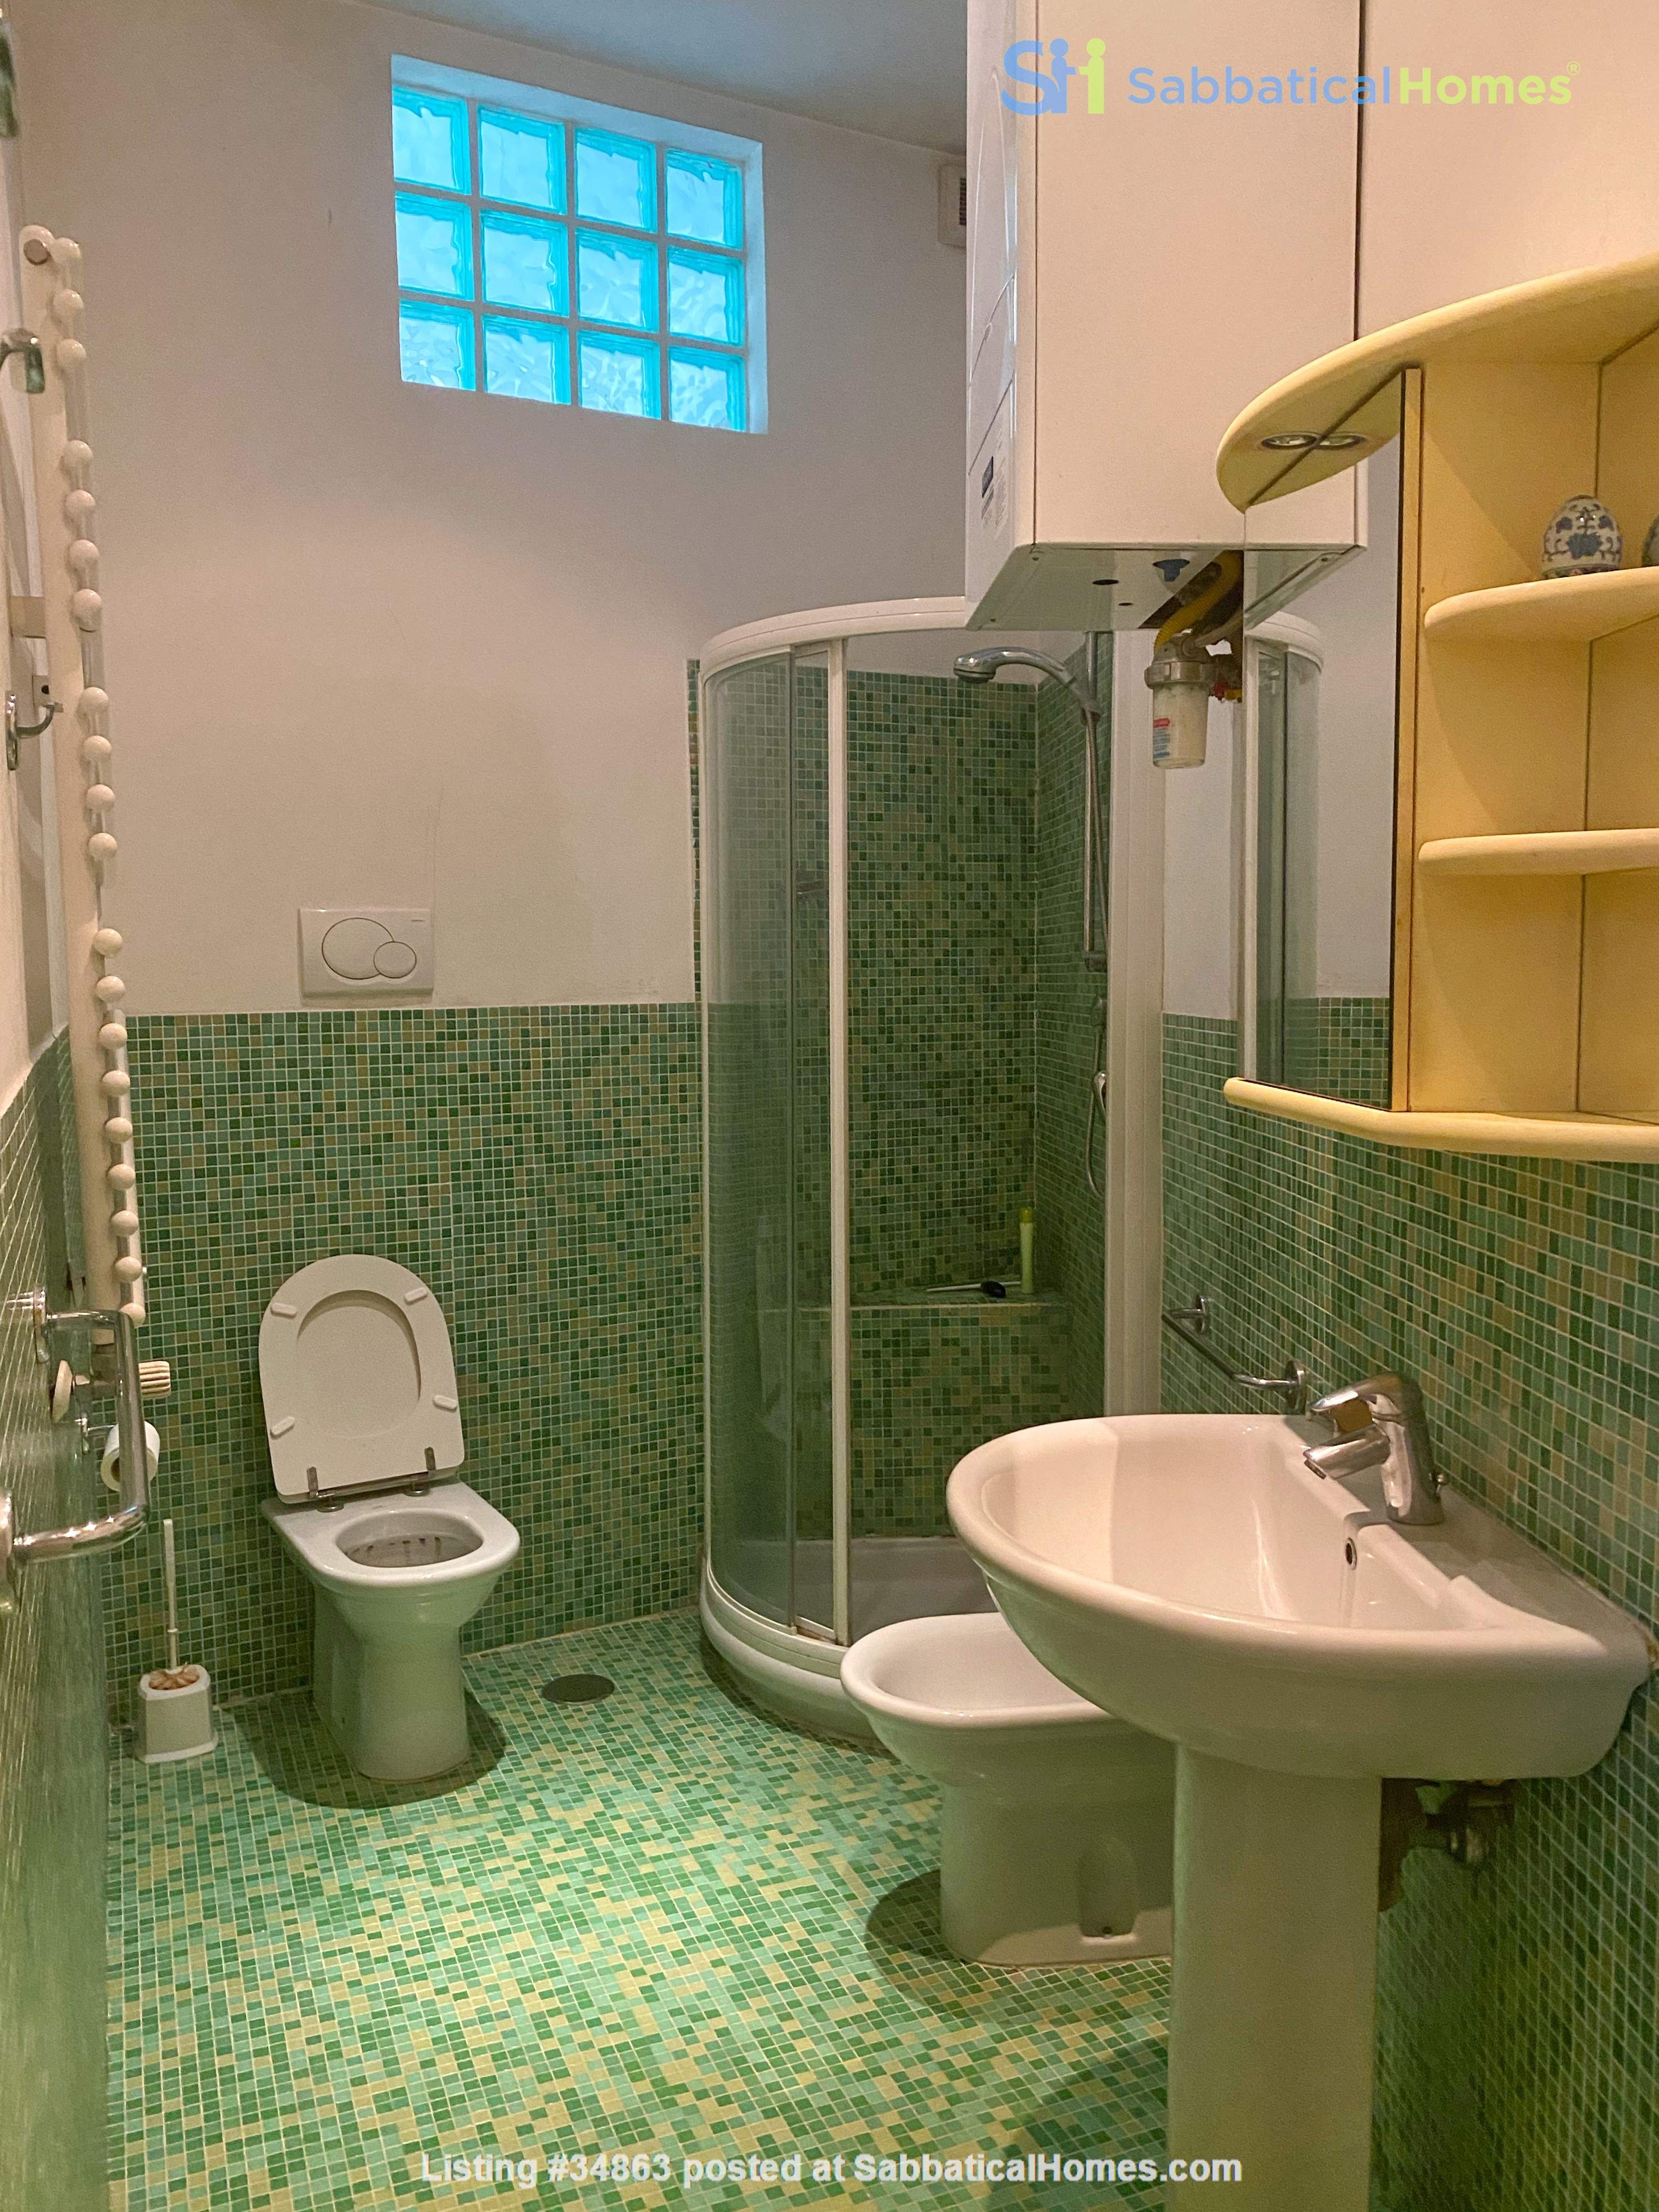 2 BR, 2 BA, spacious and comfortable apartment in Rome, Trastevere Home Rental in Rome 9